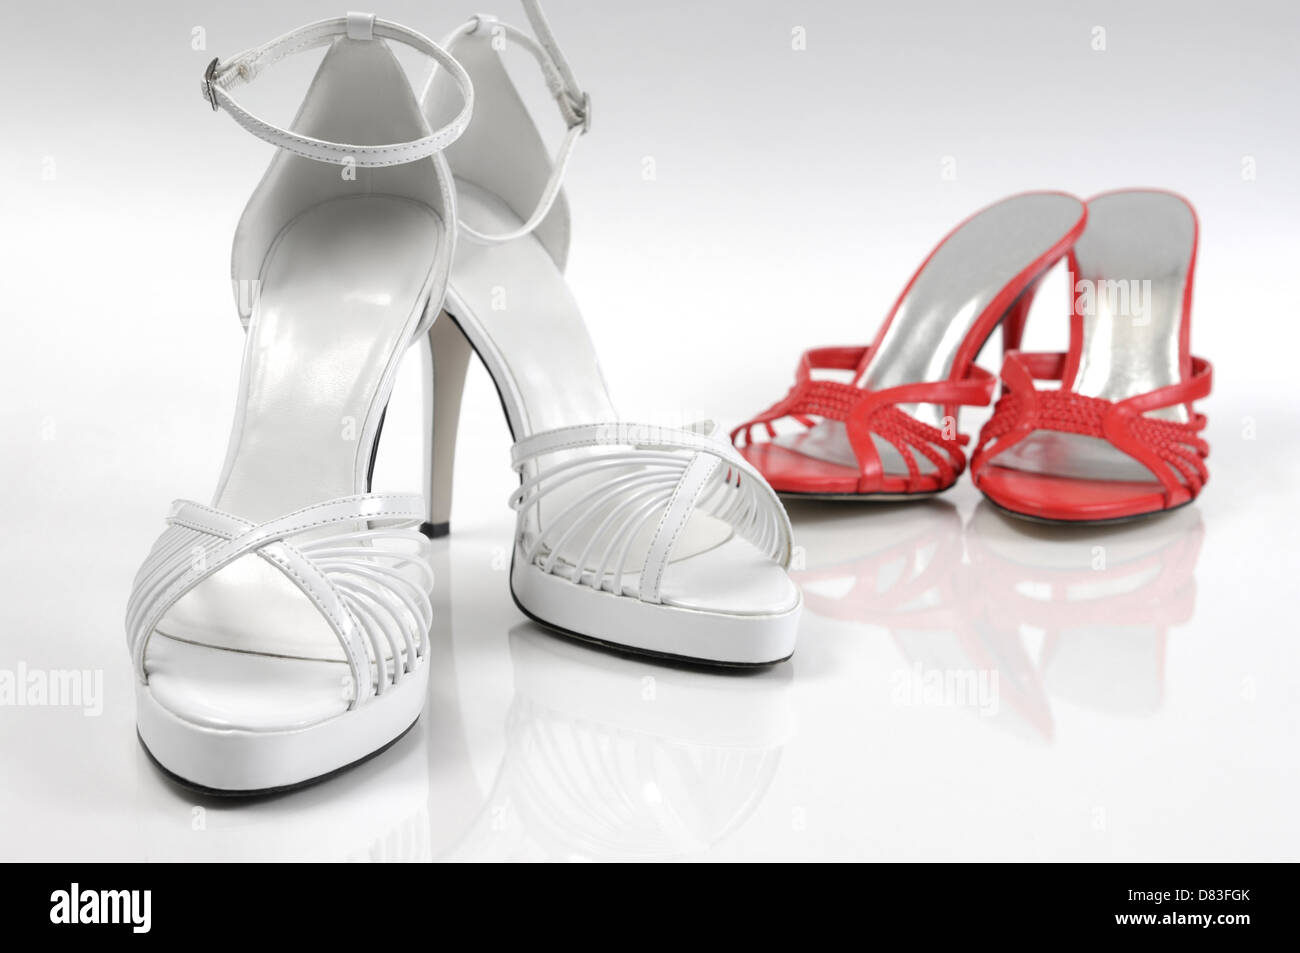 White and red high heel women shoes closeup isolated on white background - Stock Image